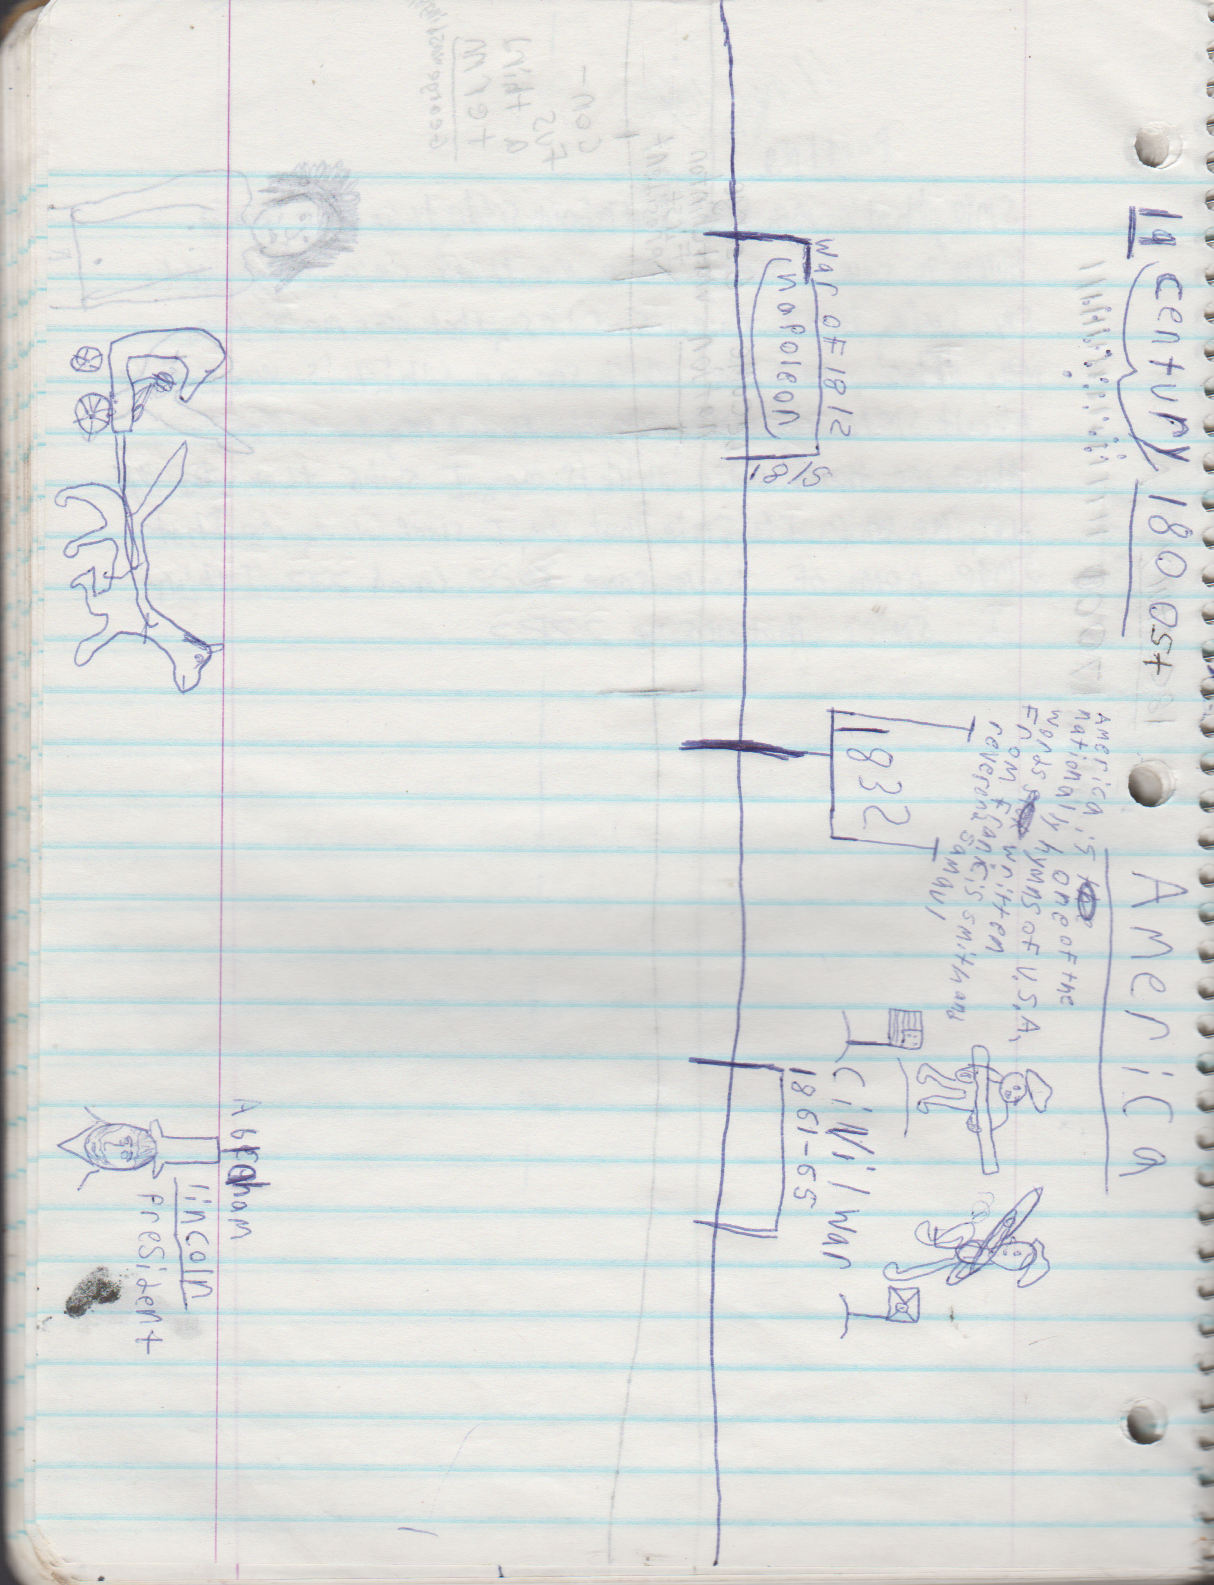 1996-08-18 - Saturday - 11 yr old Joey Arnold's School Book, dates through to 1998 apx, mostly 96, Writings, Drawings, Etc-089.png